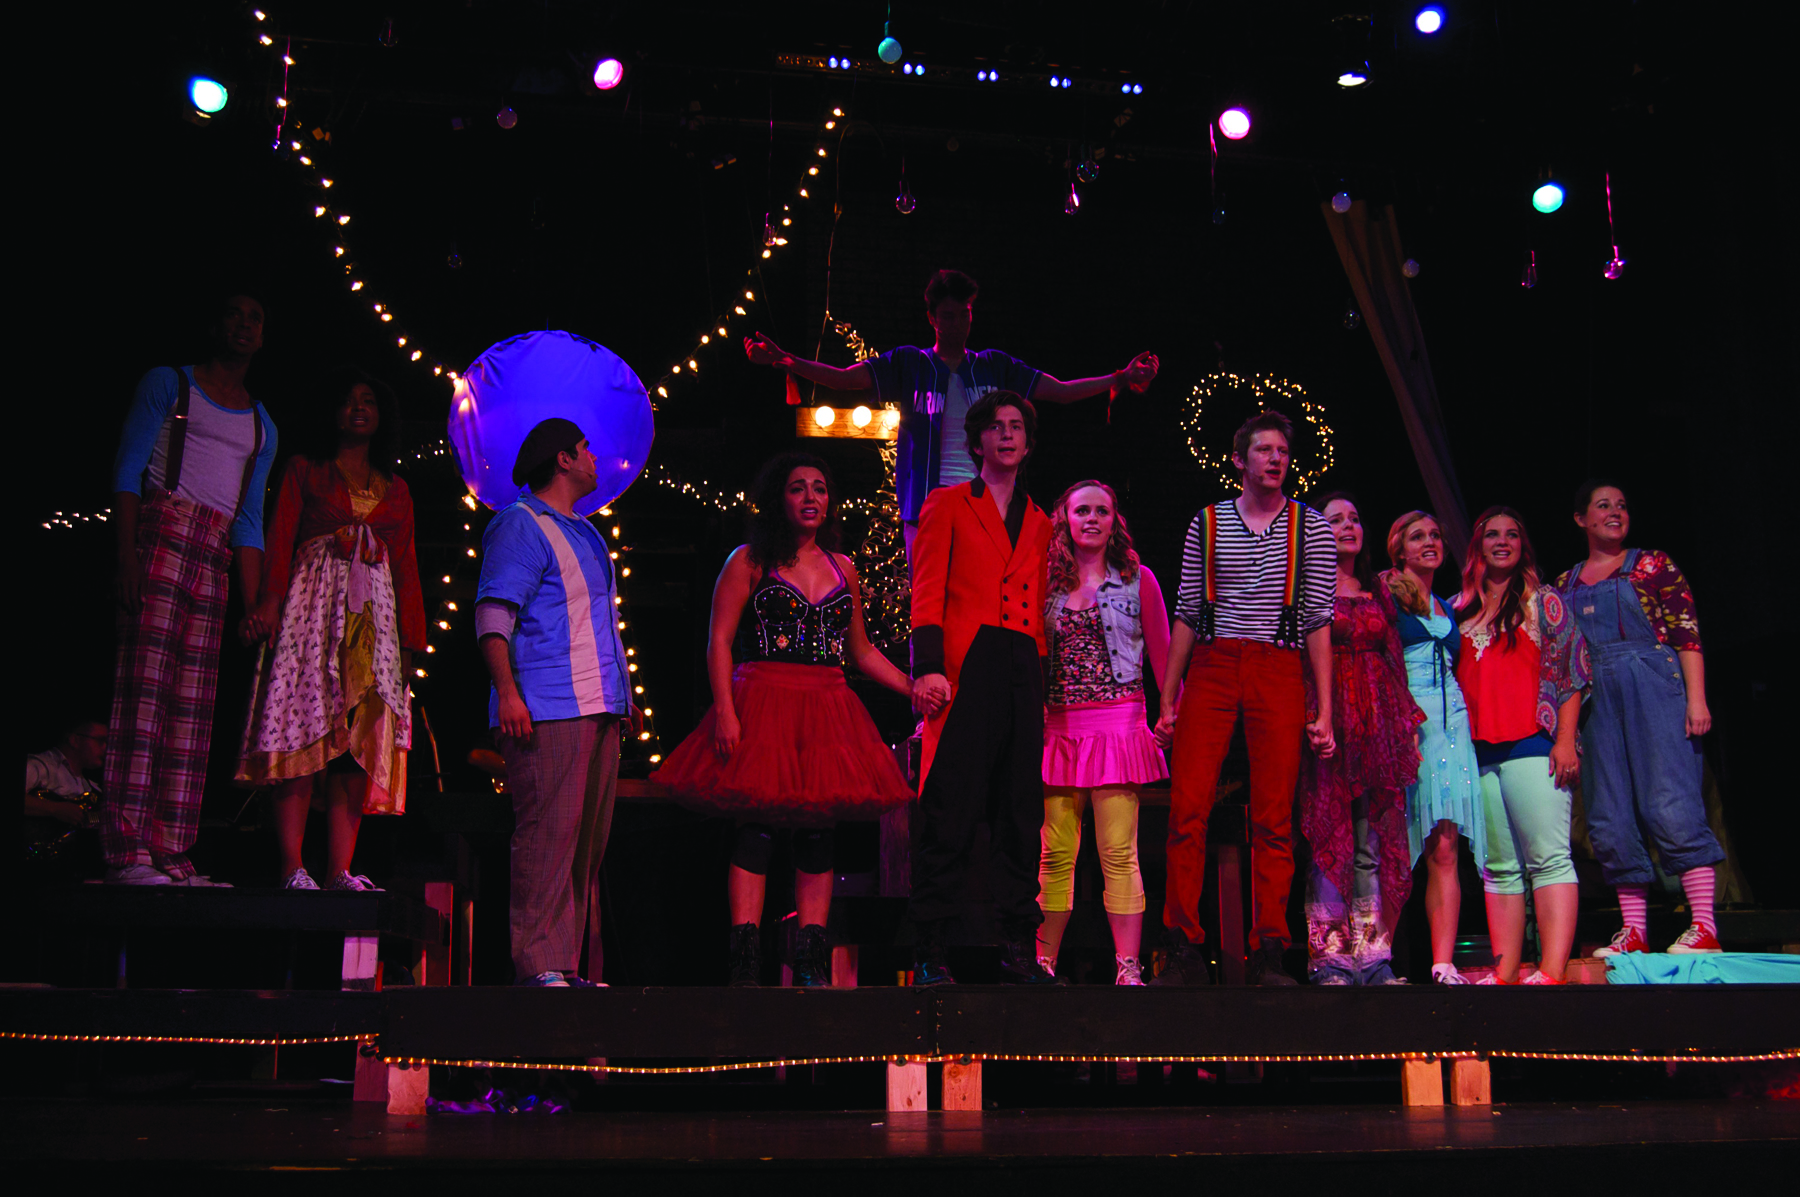 A Glimpse at Godspell